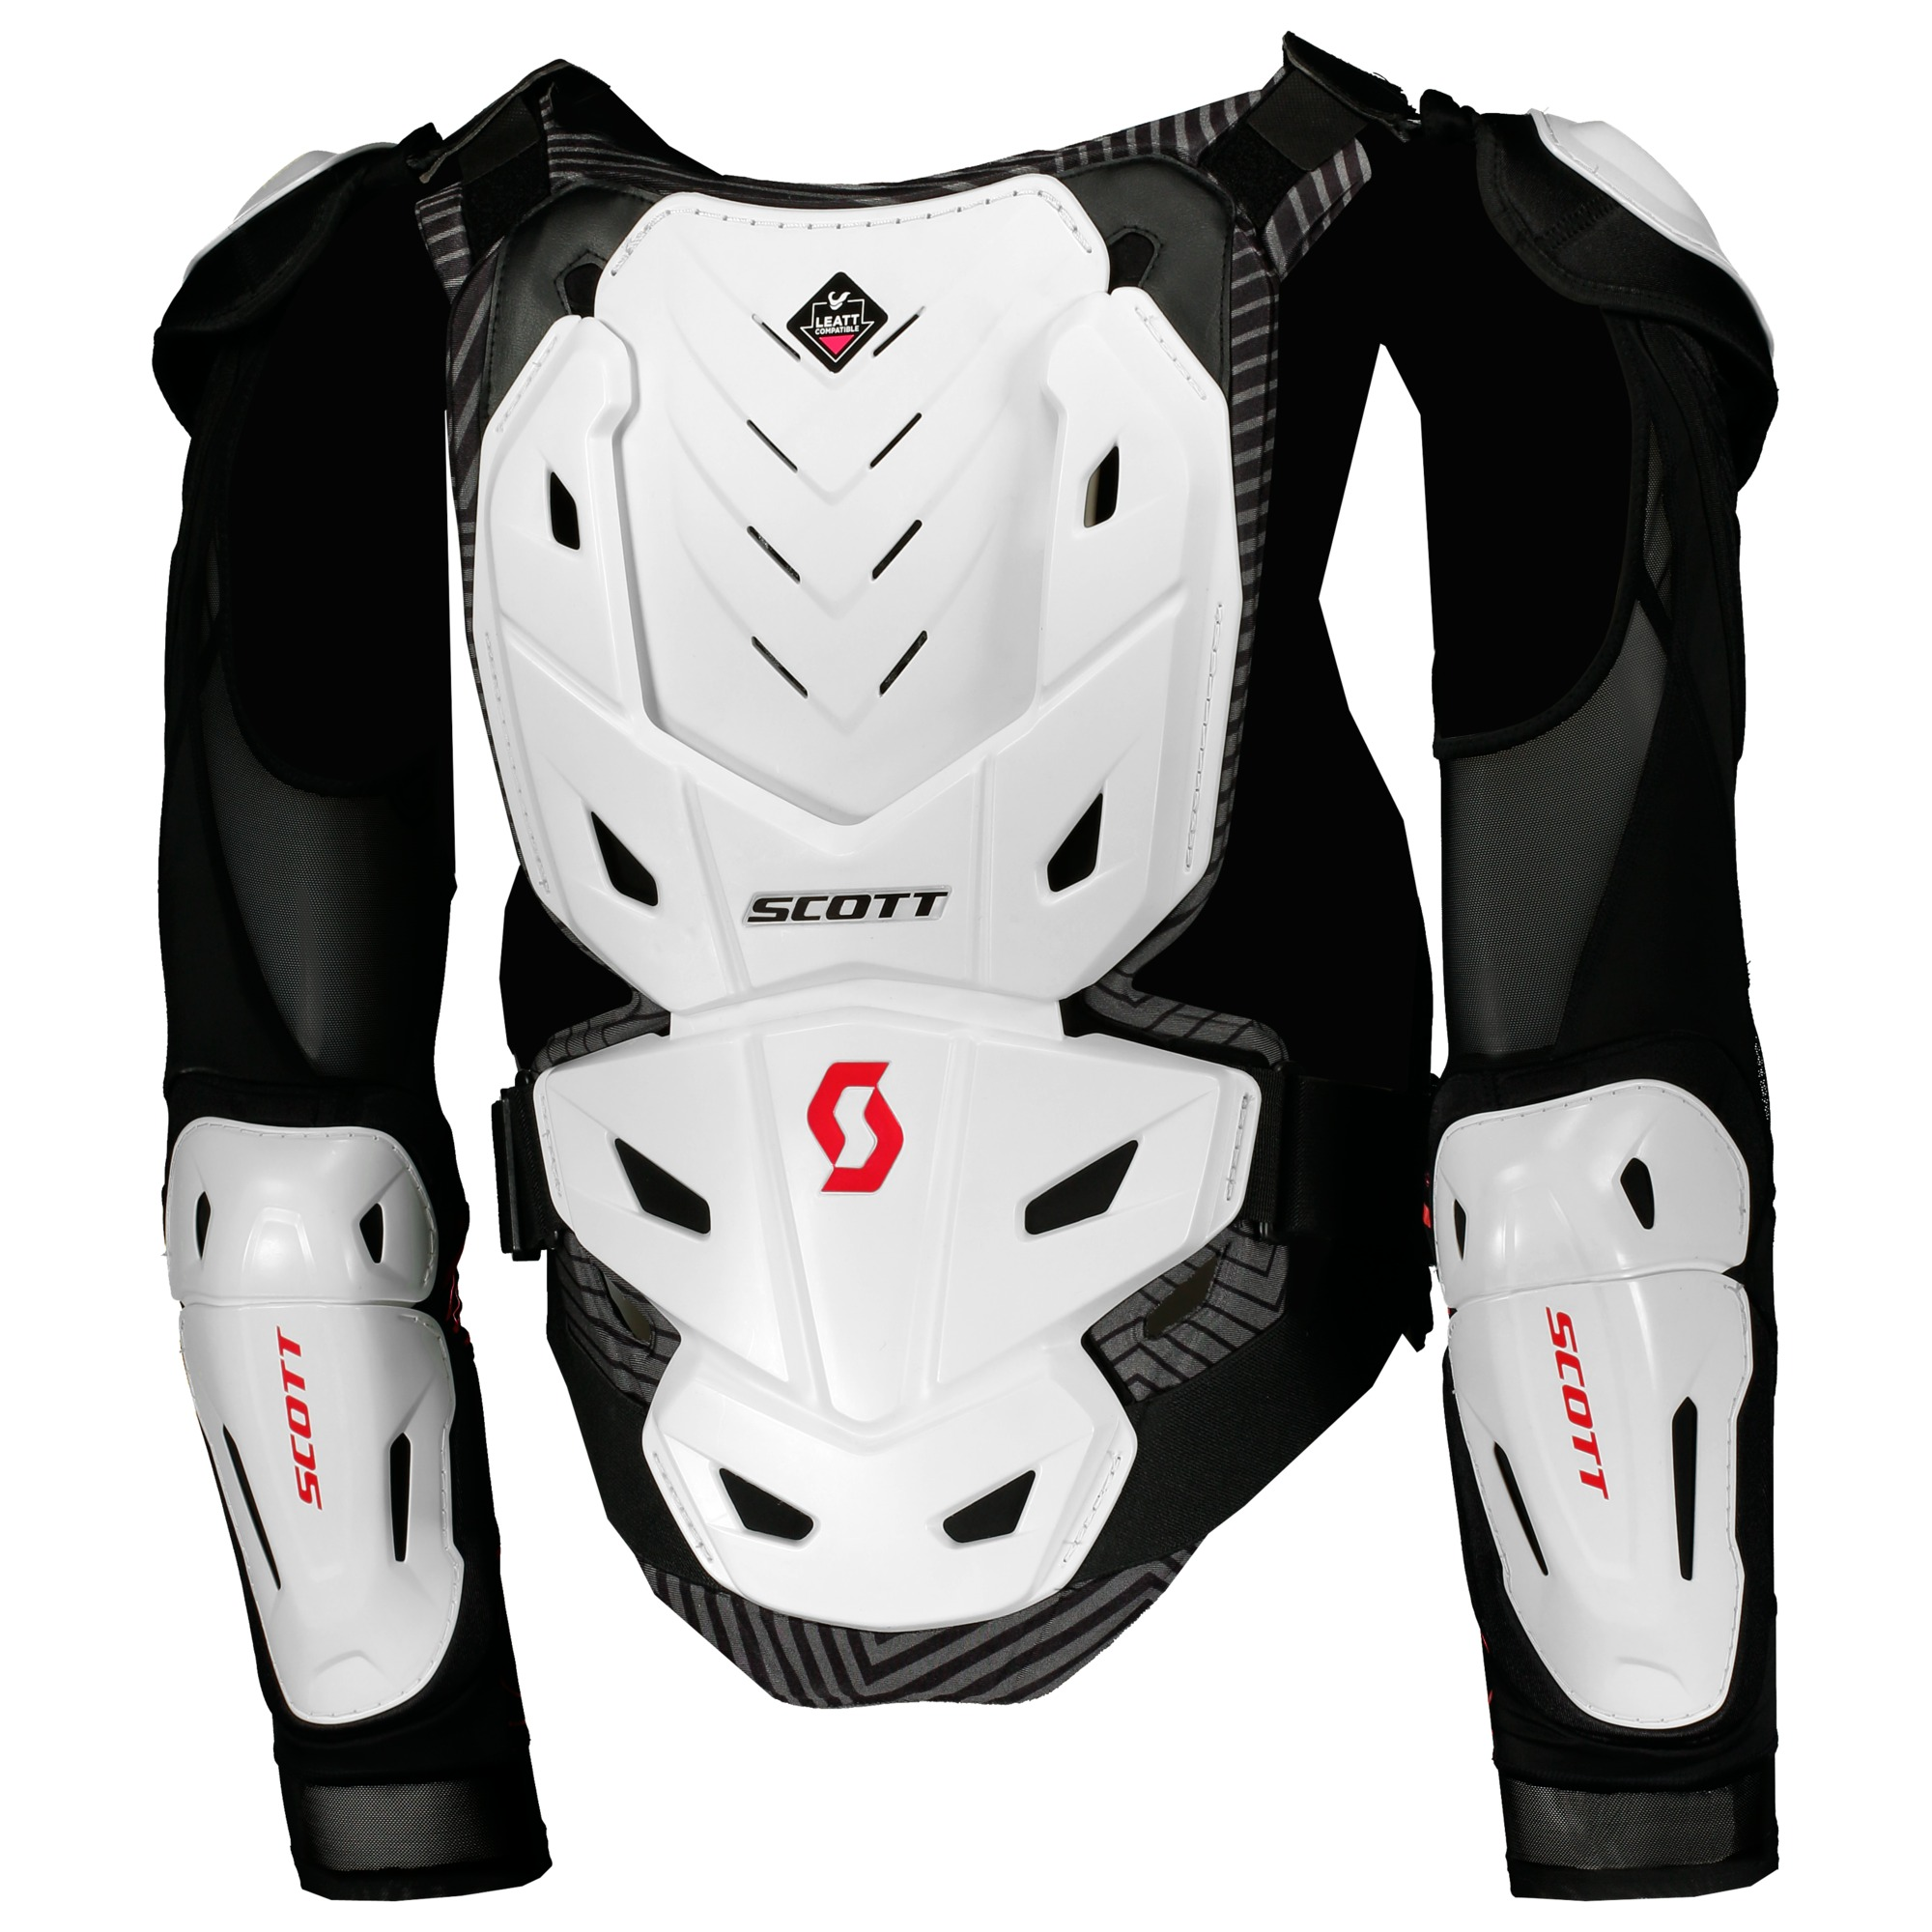 Veste de protection SCOTT Commander 2